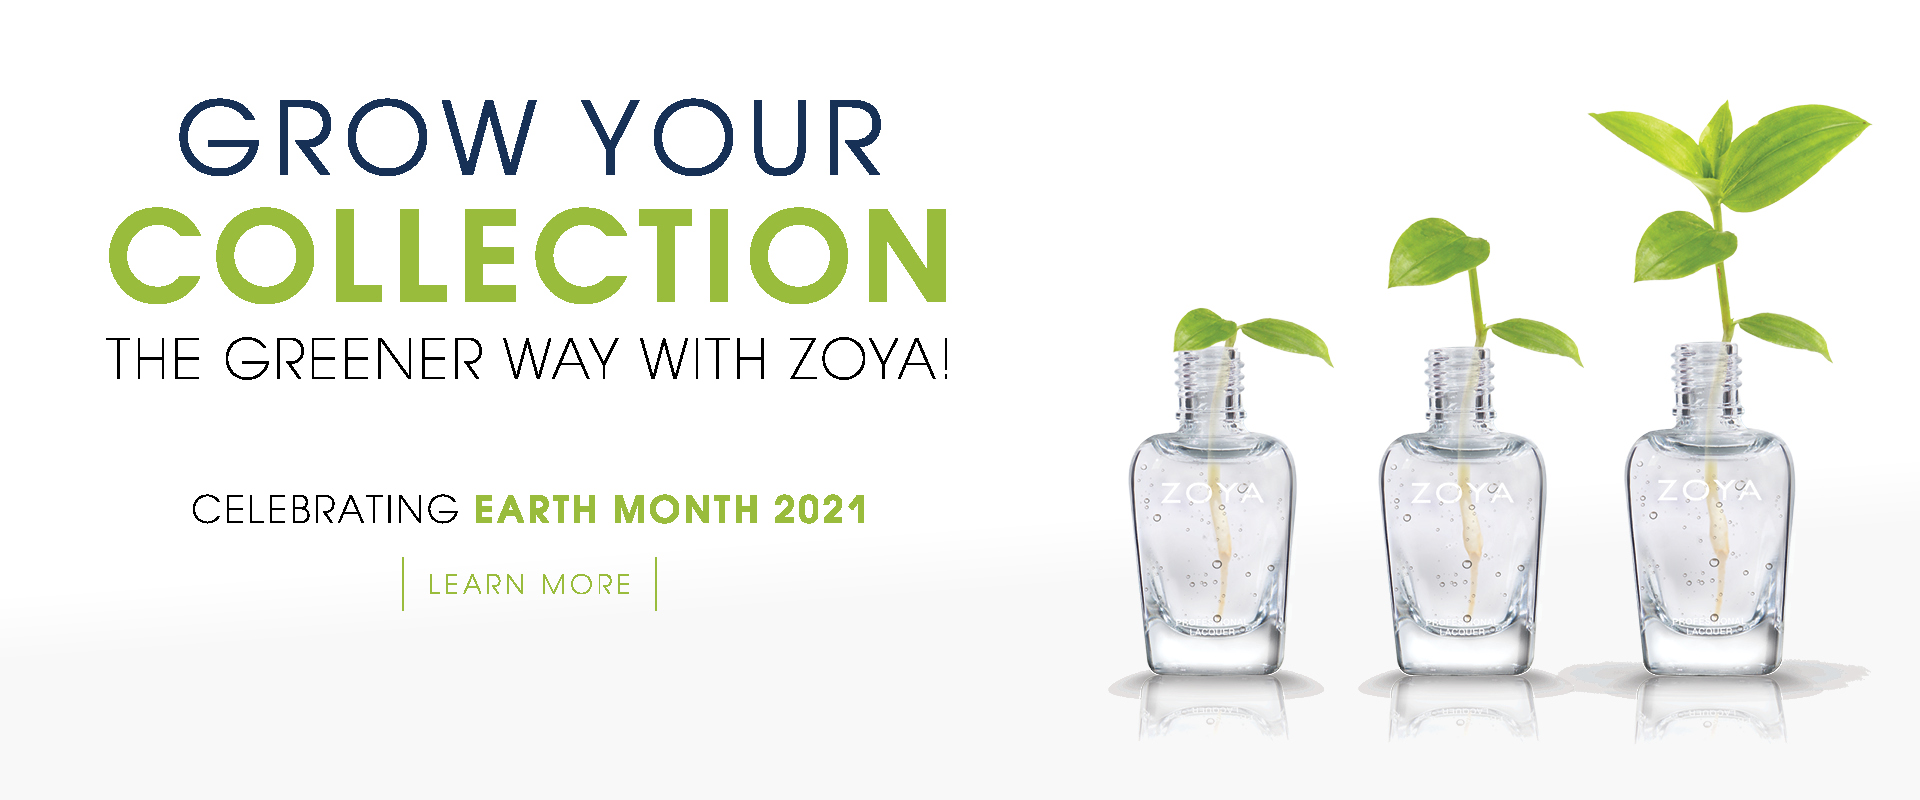 zoya earth month exchange 2021